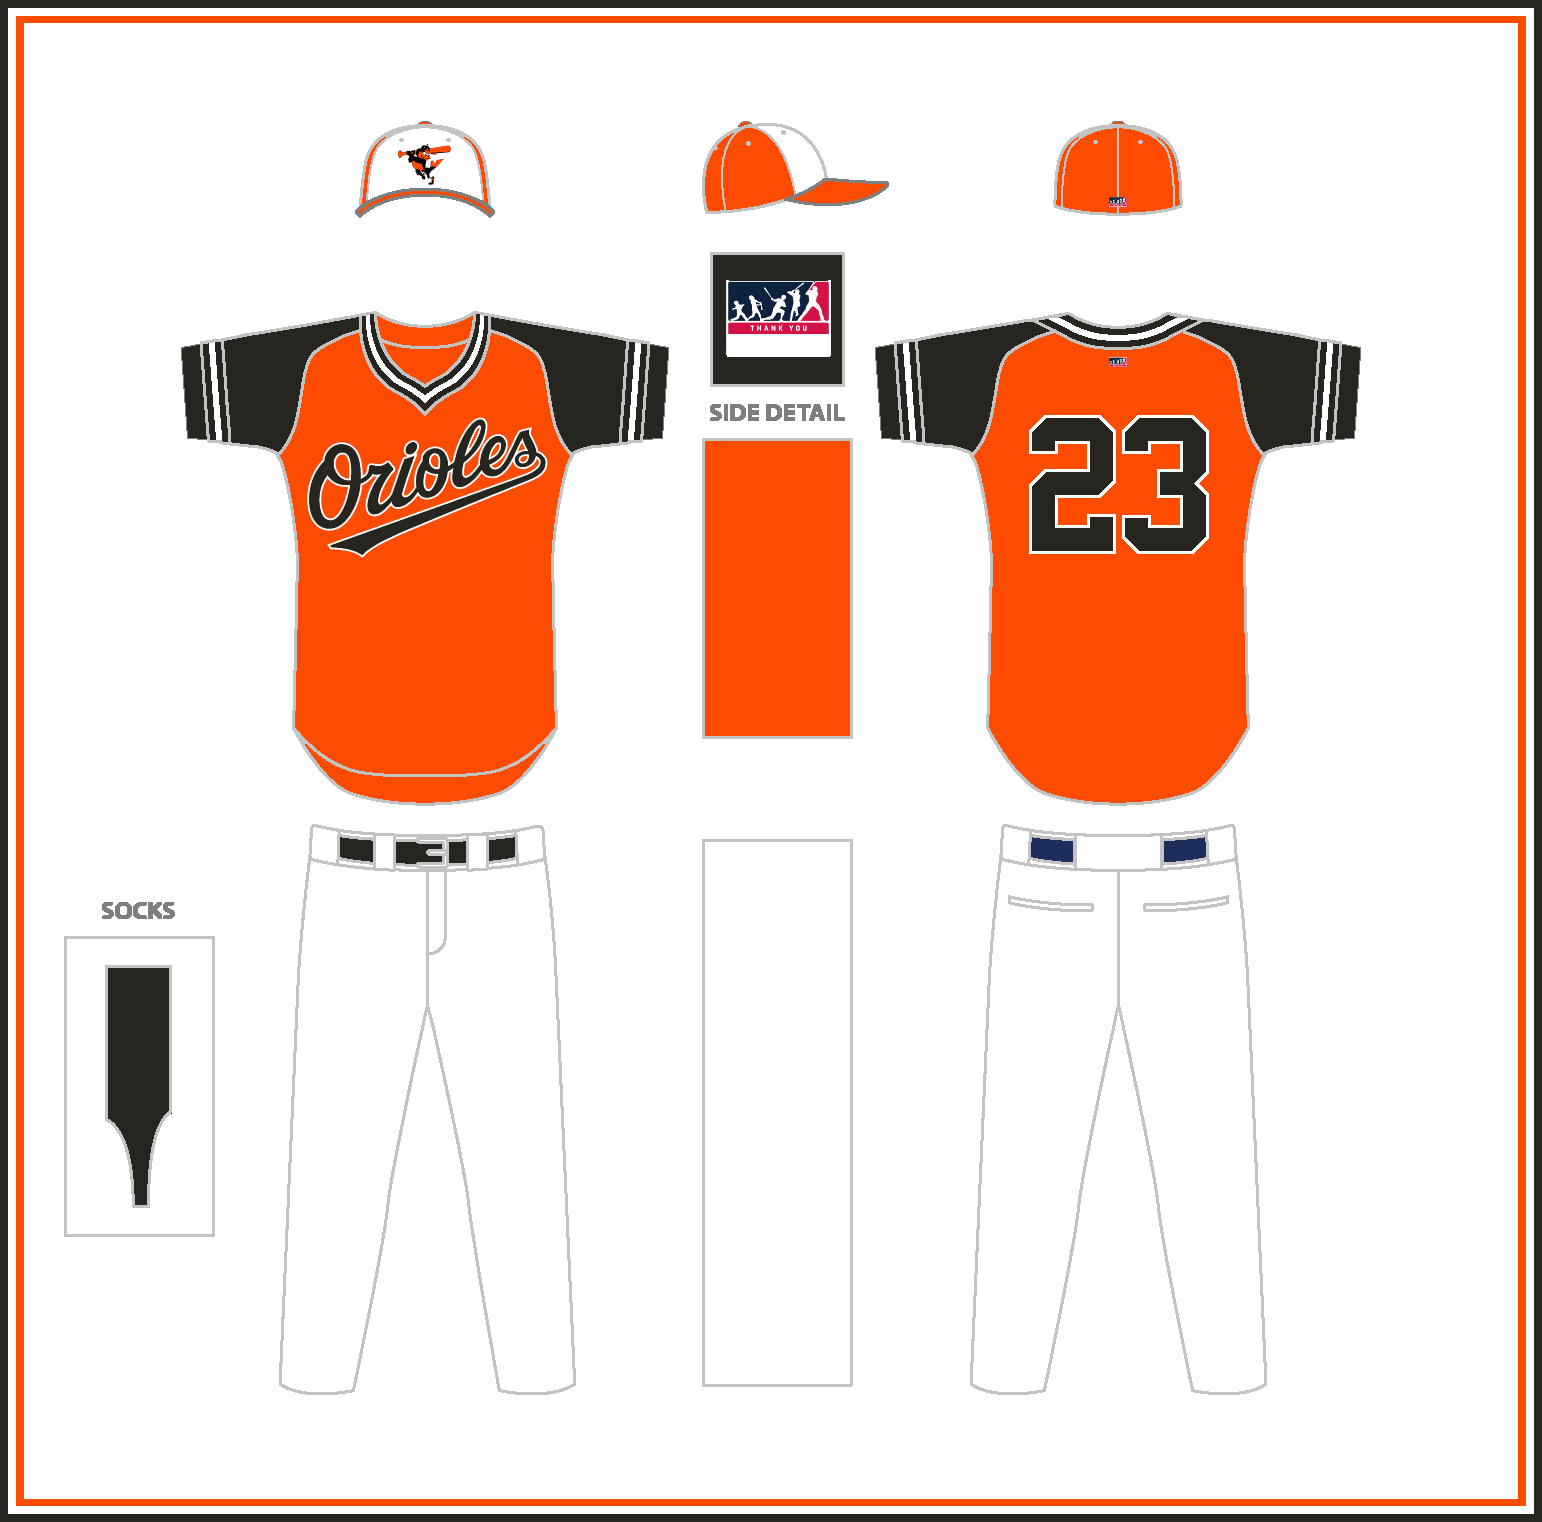 Orioles_w_outline.png